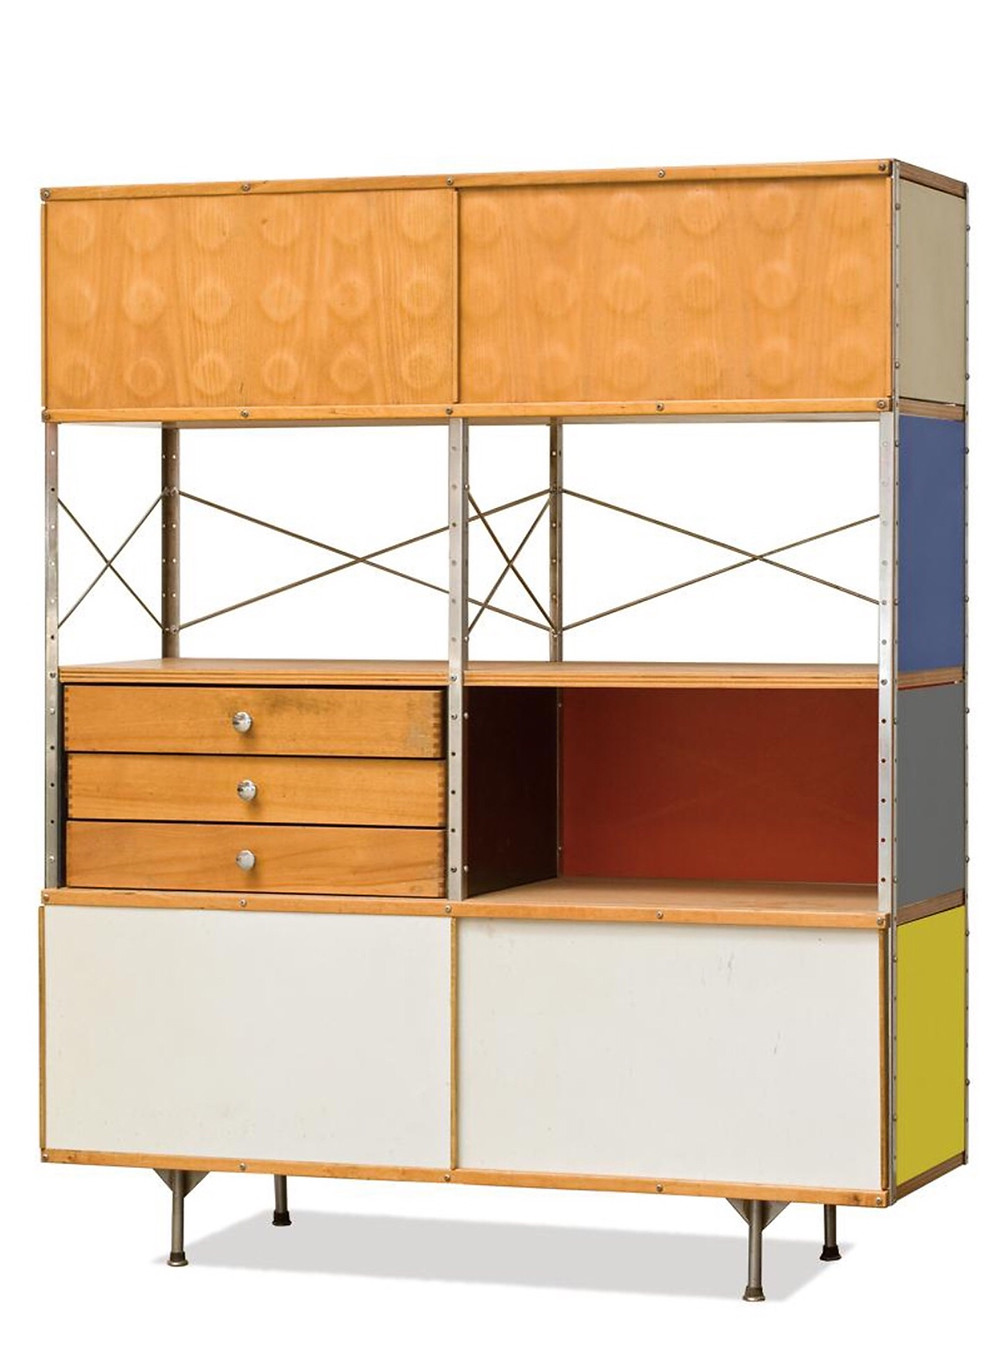 Storage Unit by Charles & Ray Eames - image source Pinterest